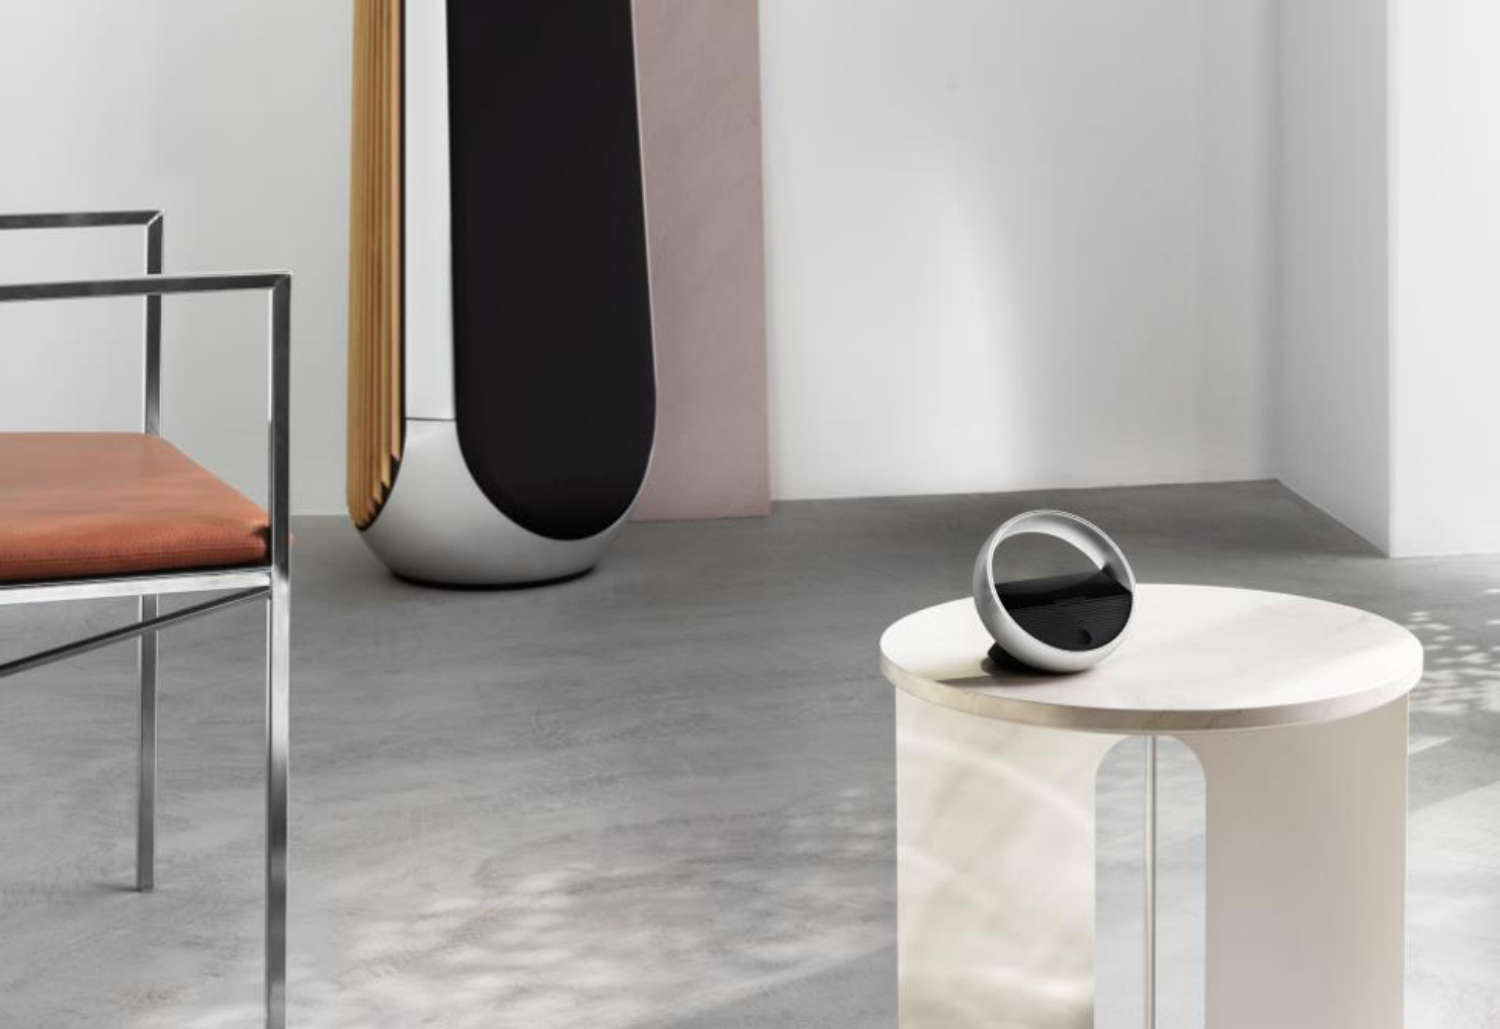 Bang & Olufsen Beoremote Halo: One-Touch-Zugang zur Lieblingsmusik